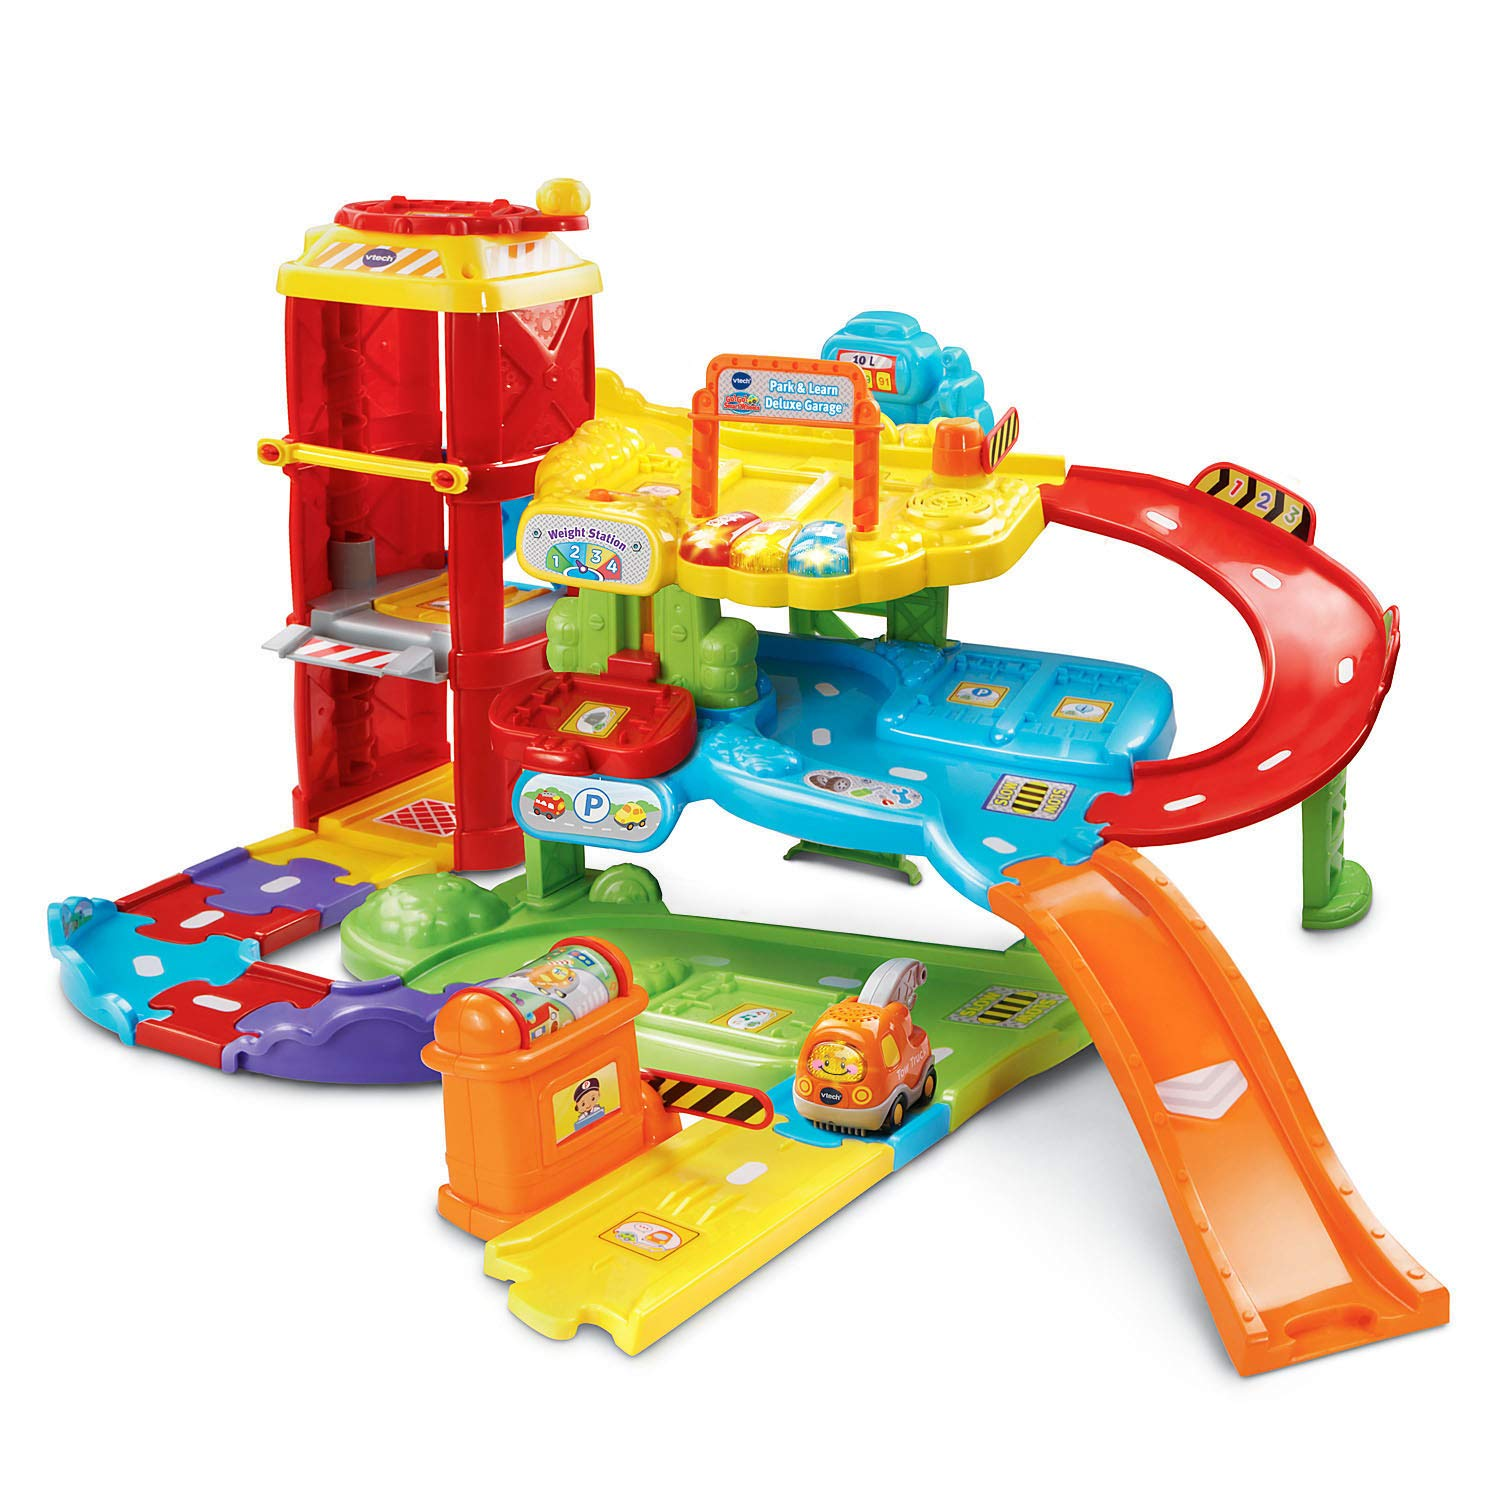 VTech Go! Go! Smart Wheels Park and Learn Deluxe Garage 80-180000